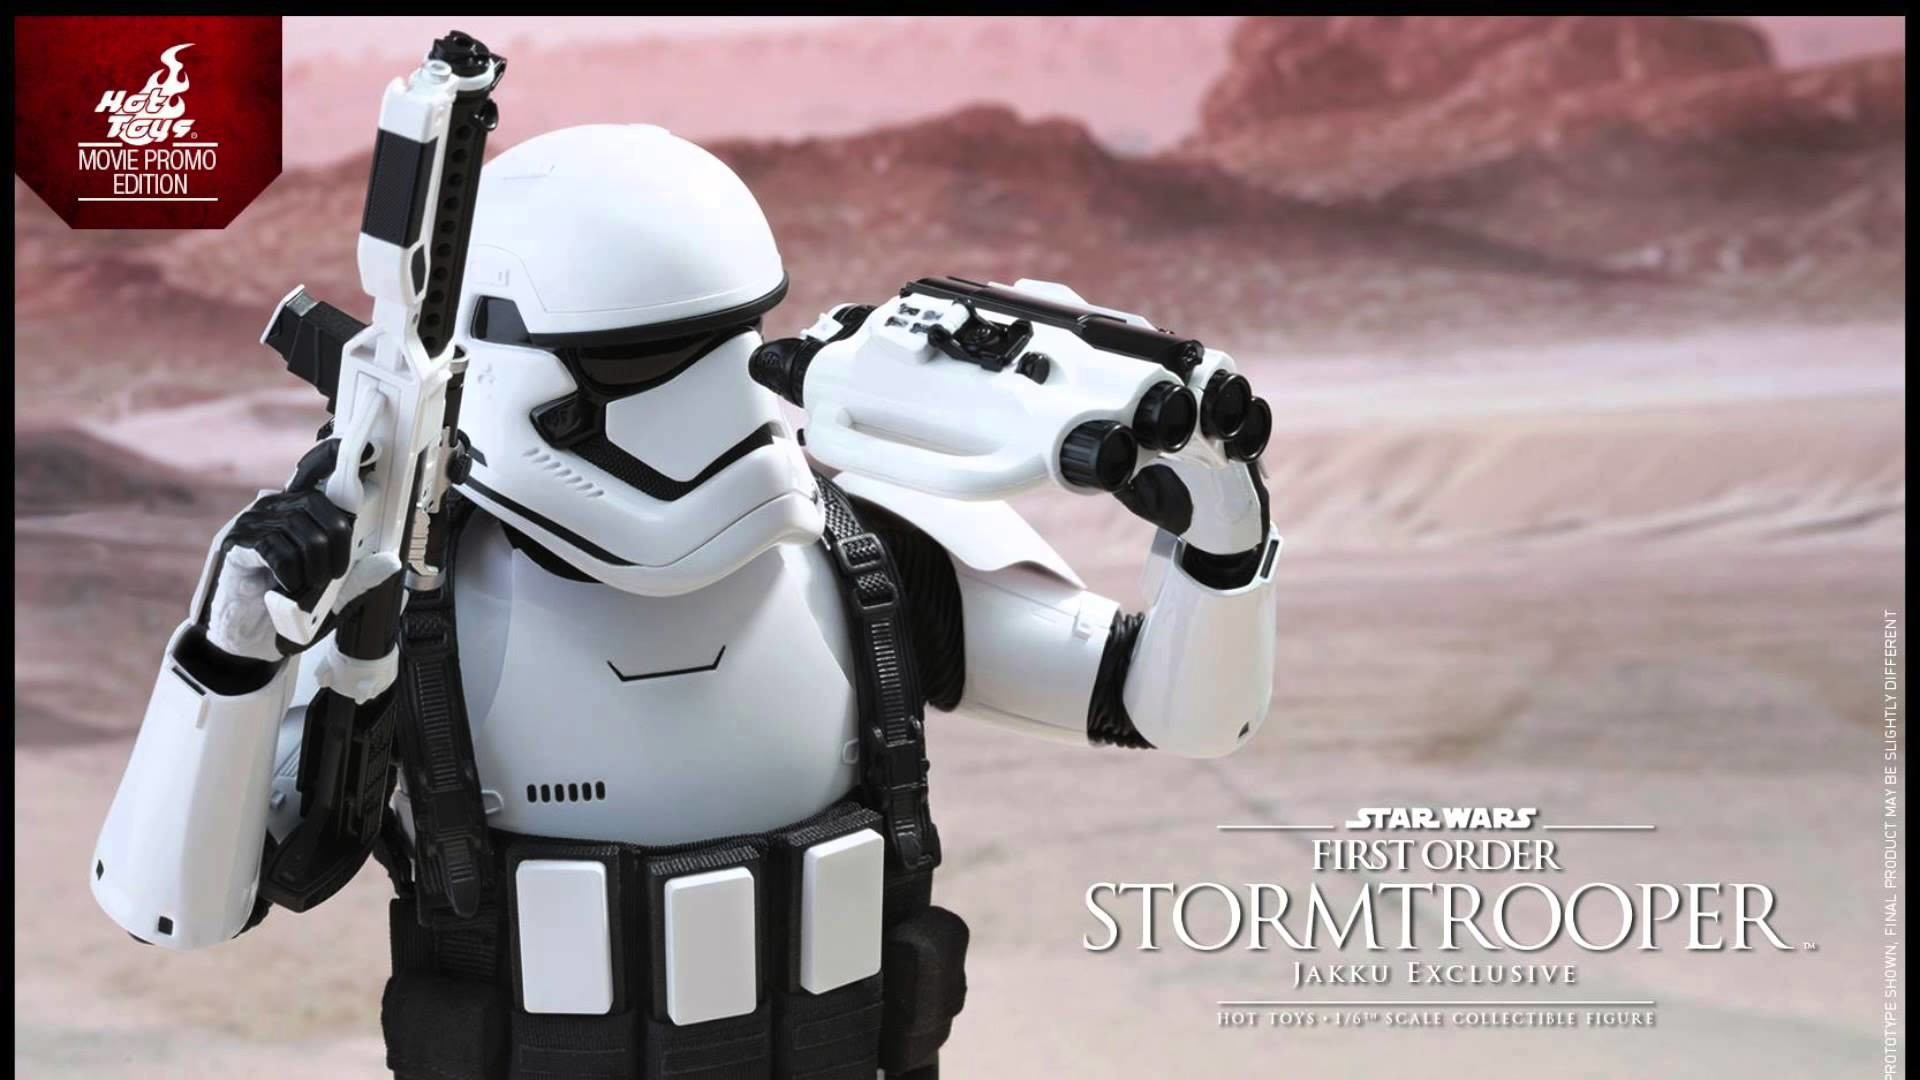 Star Wars The Force Awakens Hot Toys First Order Stormtrooper Jakku  Exclusive 1/6 Scale Figure!